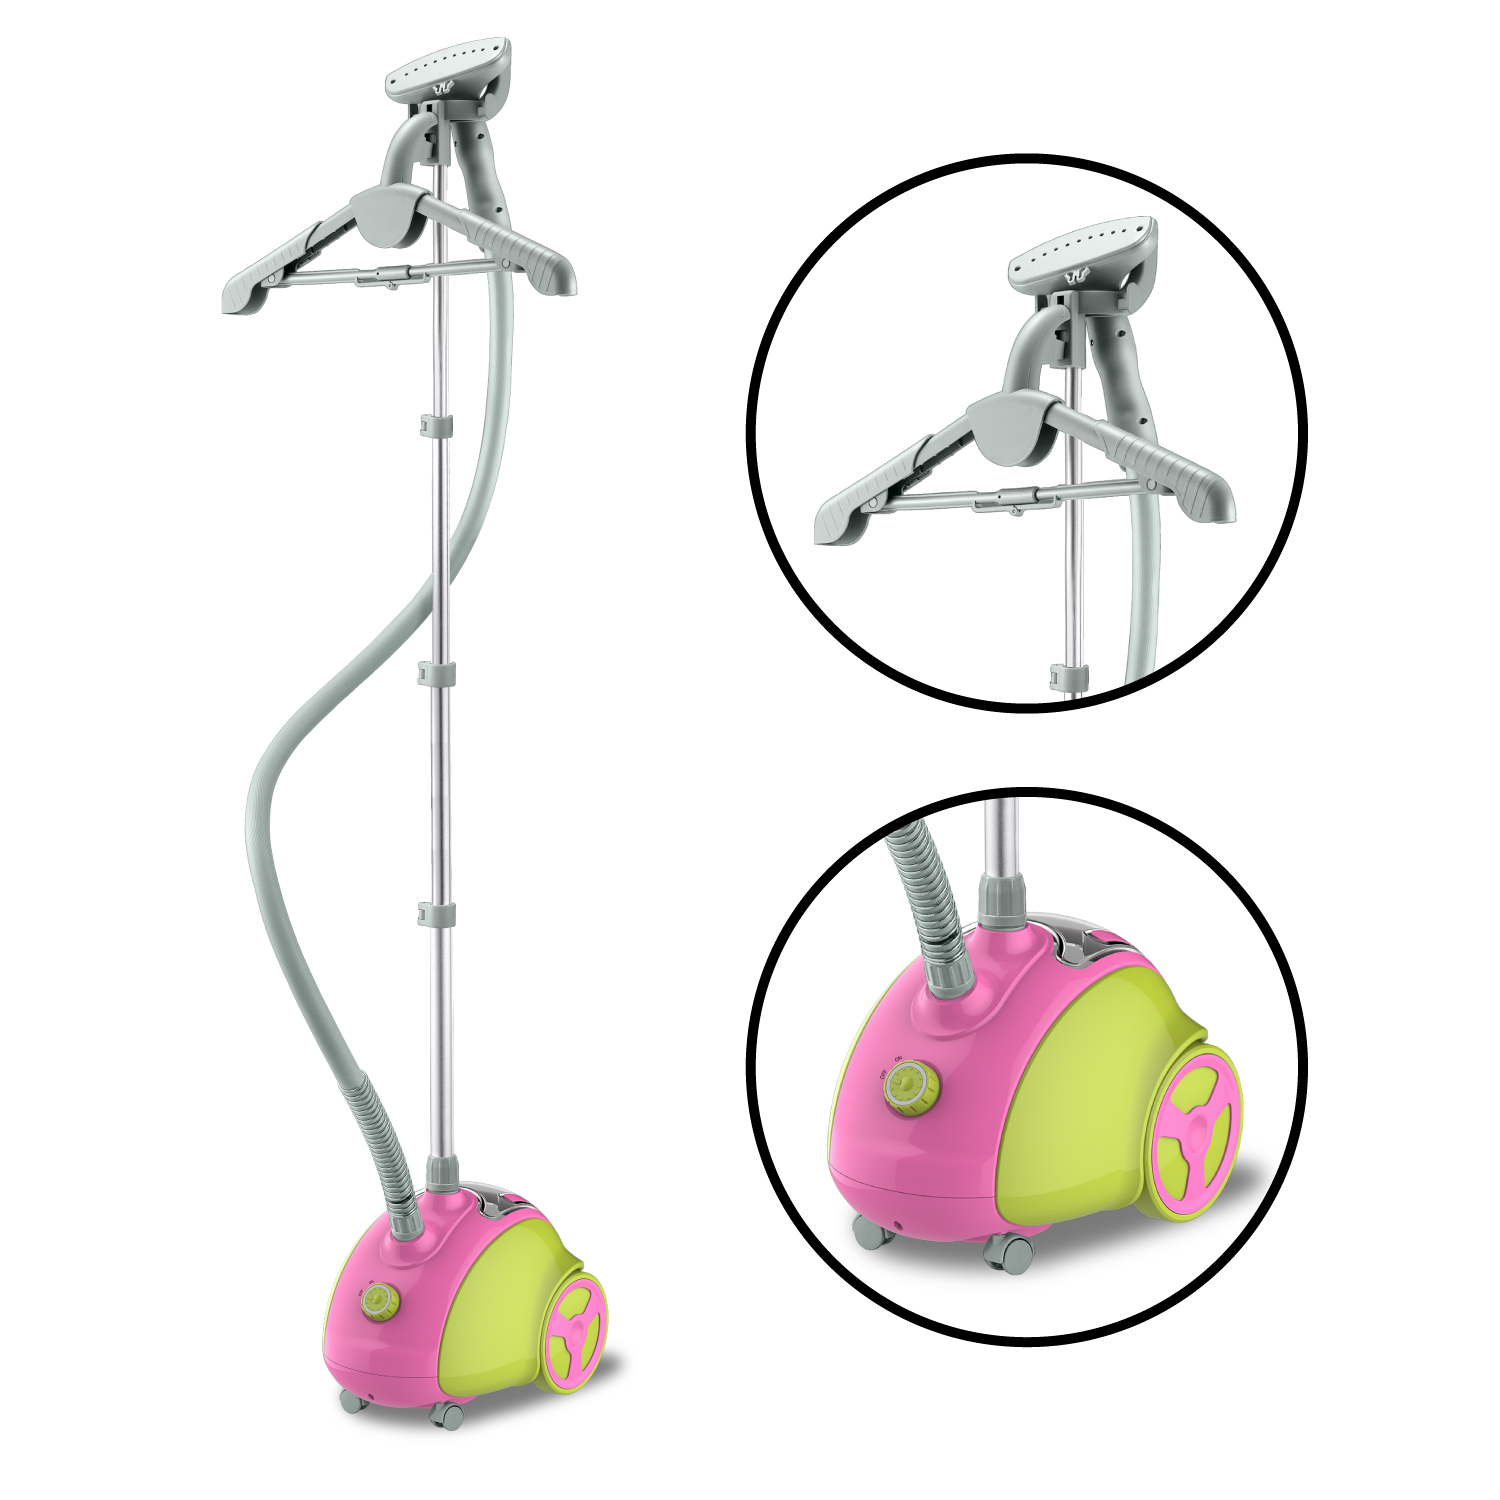 Steam and Go Professional Garment Steamer with Garment Hanger and Fabric Brush Pink Green by